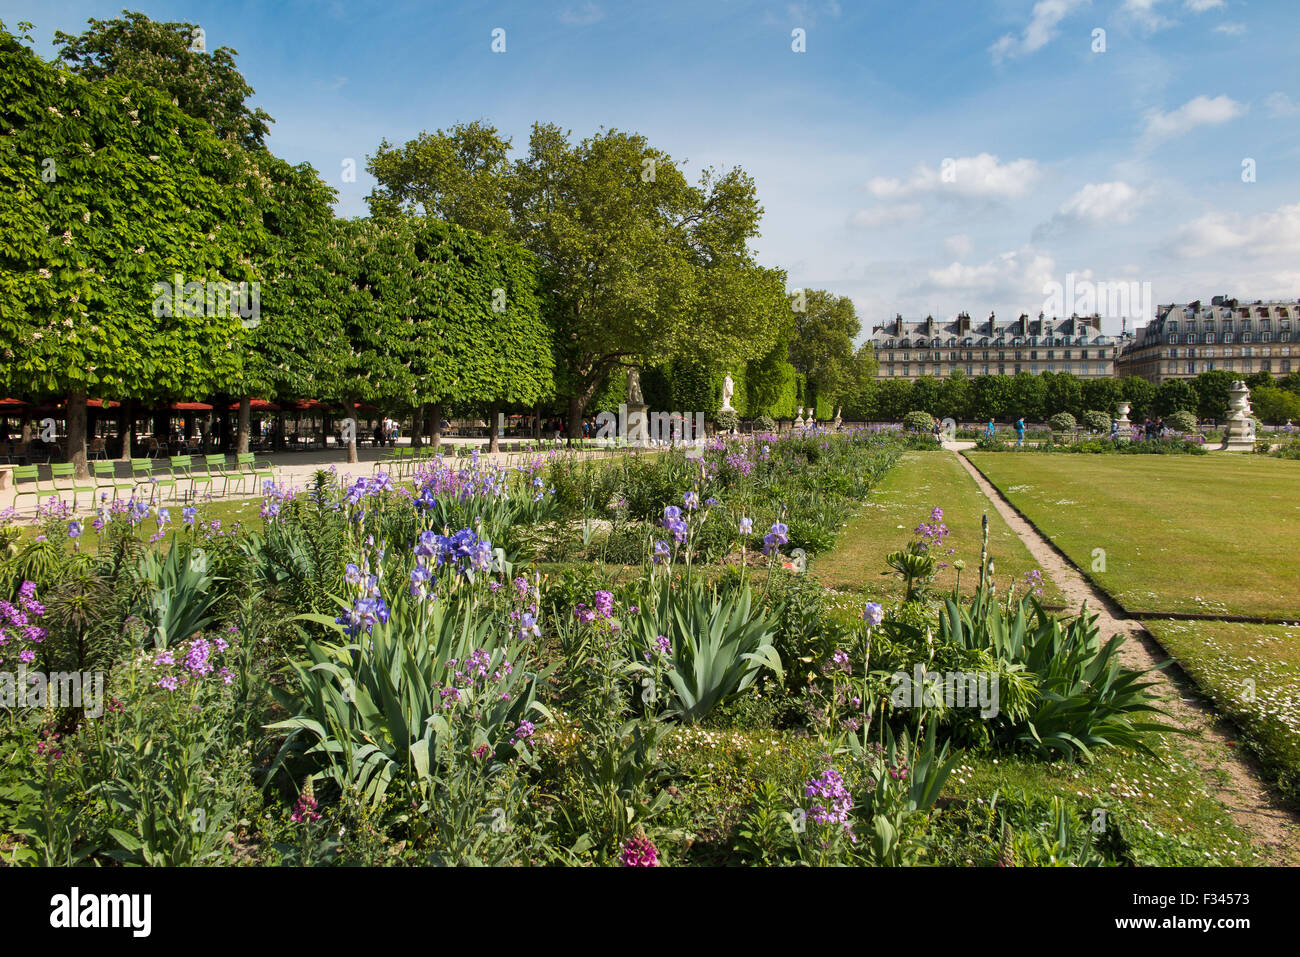 Jardin des Tuileries, Paris, France - Stock Image